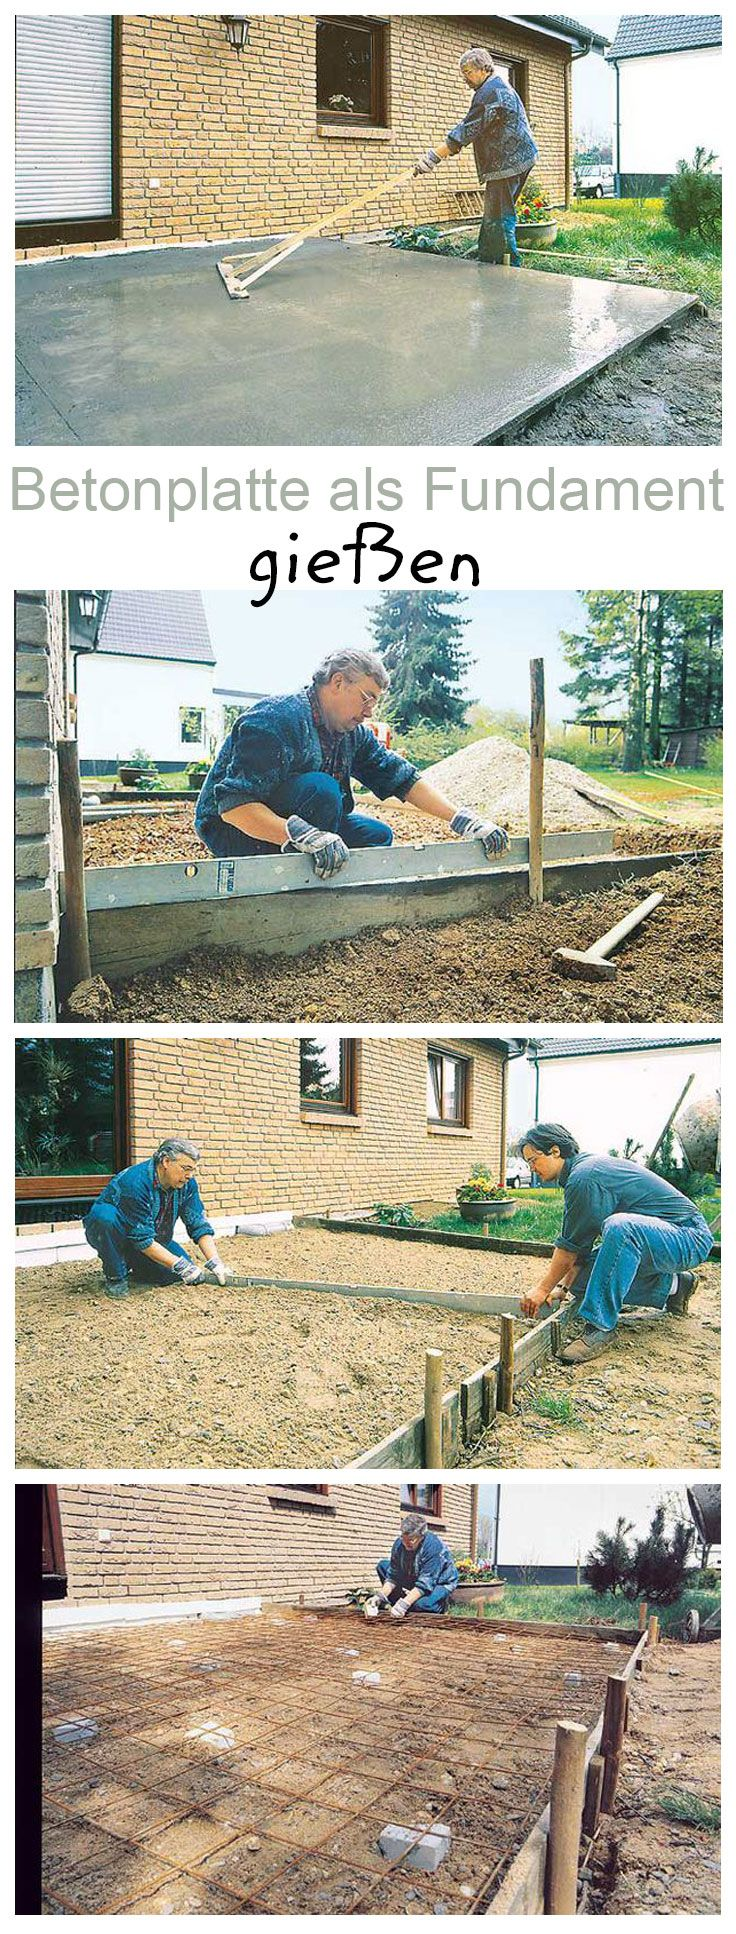 25+ Best Ideas About Gartenhaus Bauen On Pinterest | Terrassen ... 10 Ideen Tolle Spasige Diy Gartenschaukel